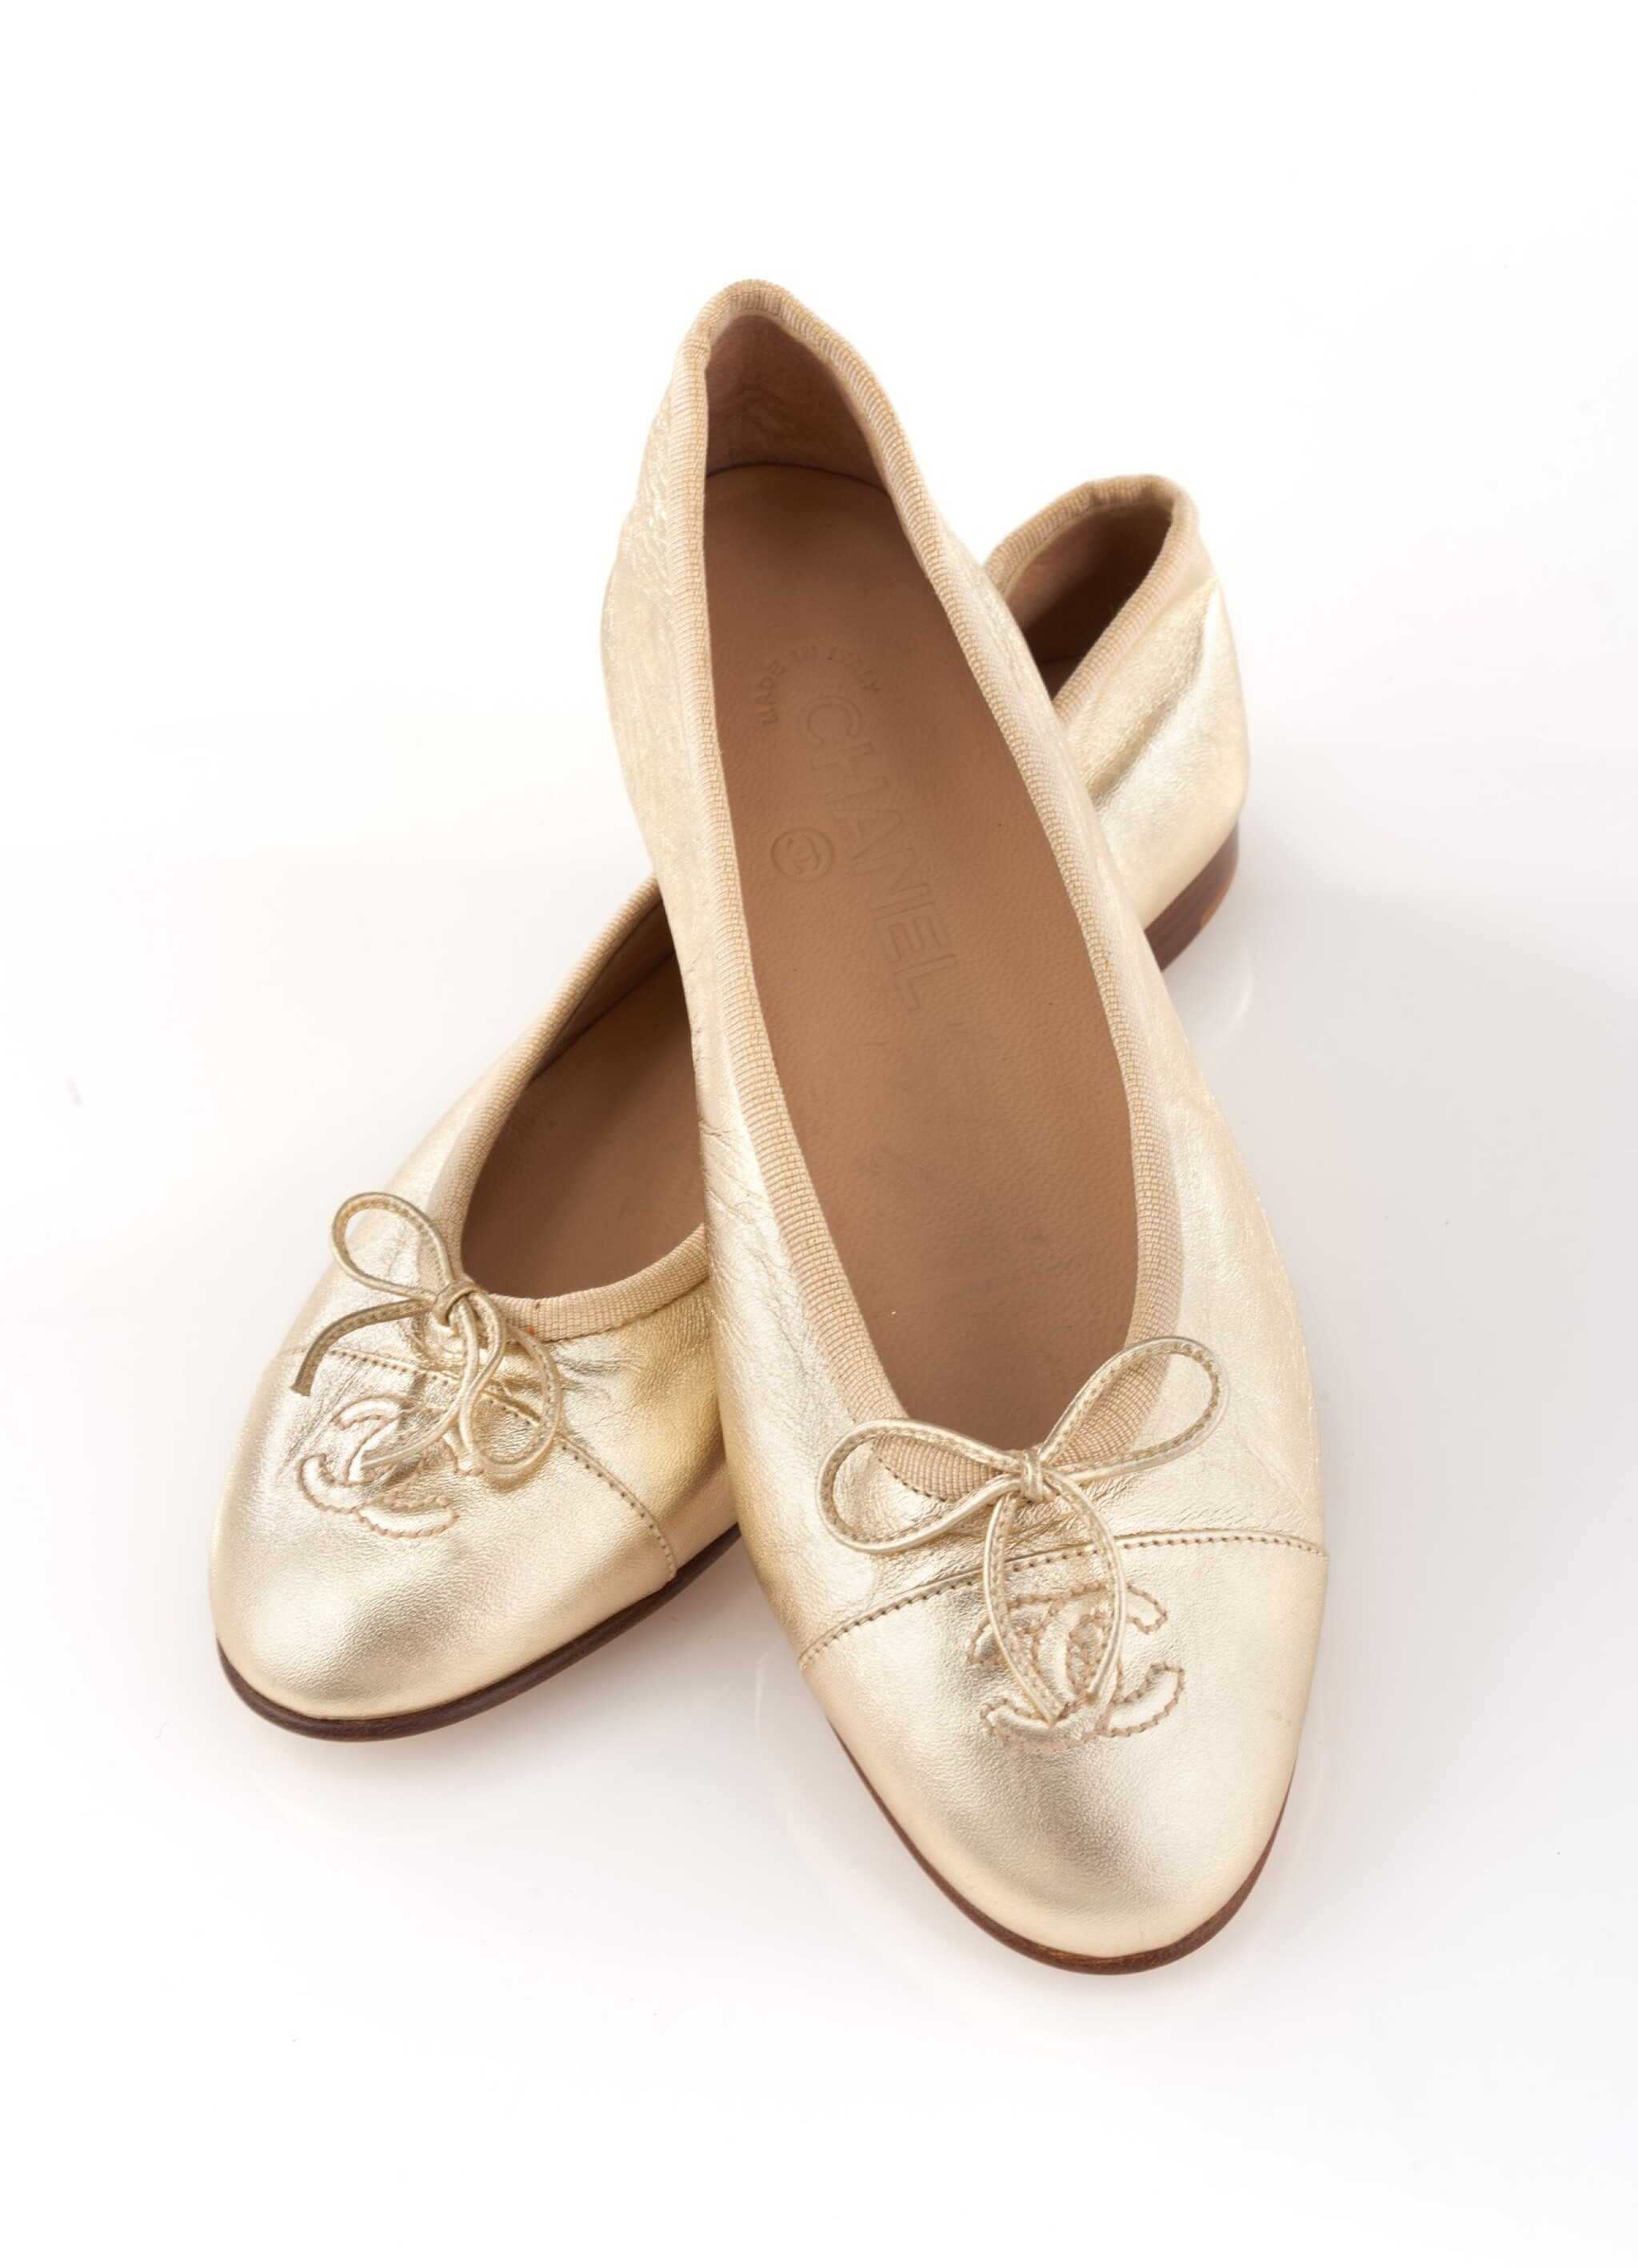 PAIR OF GOLD LEATHER FLATS, CHANEL